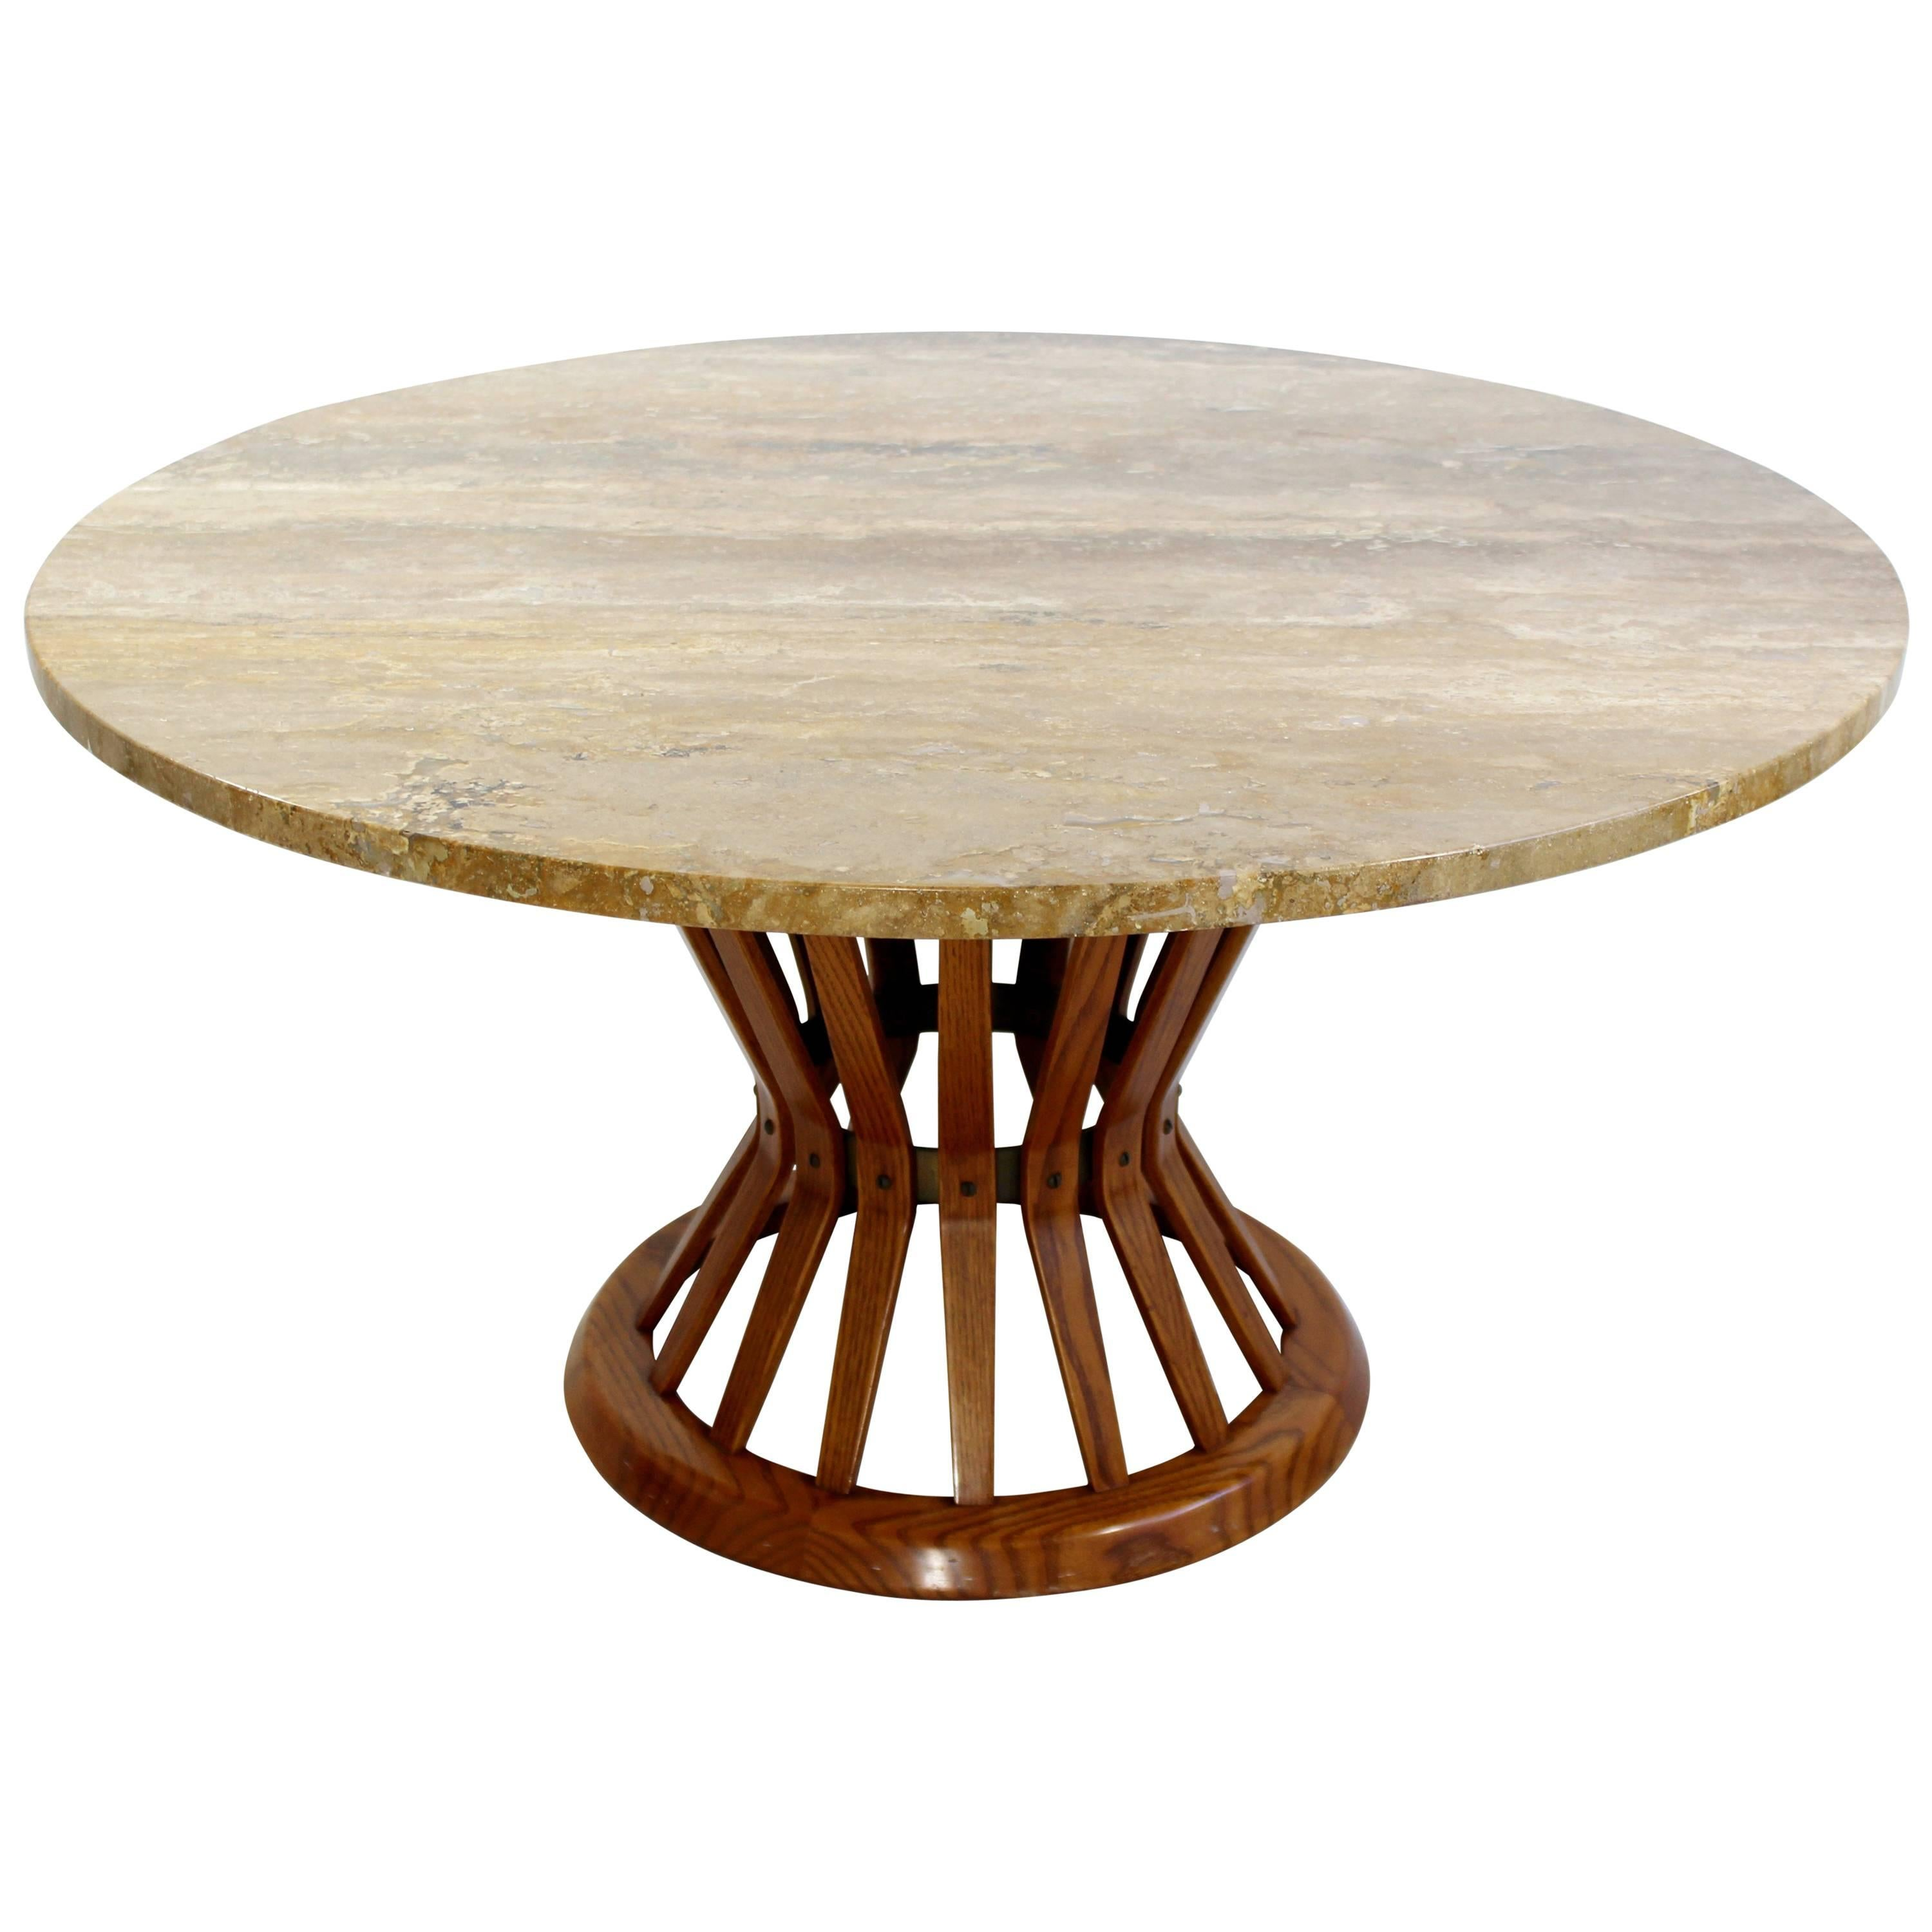 Ordinaire Mid Century Modern Dunbar Wheat Sheaf Marble And Wood Round Coffee Table  For Sale